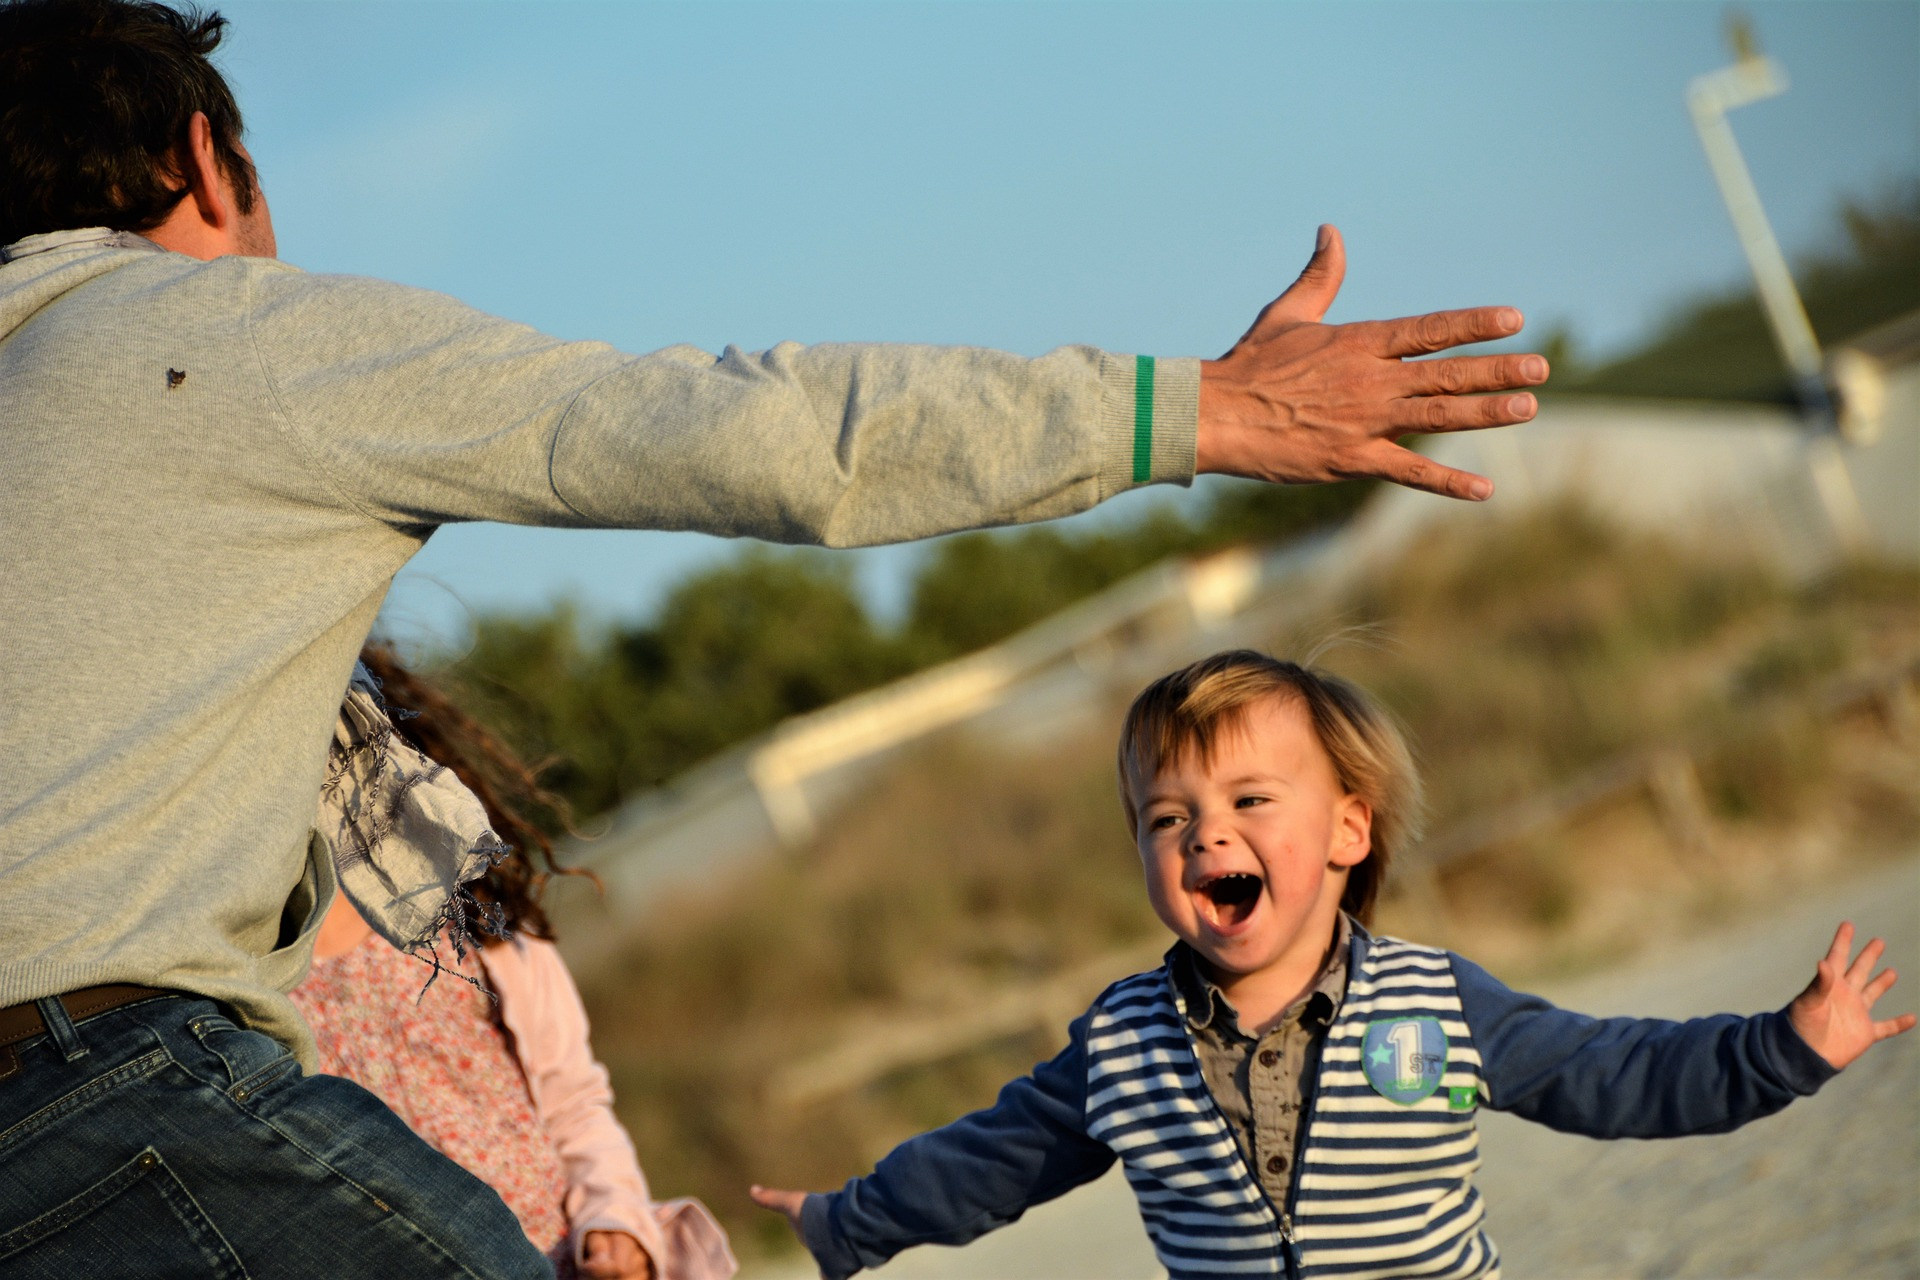 Image: boy runs toward his father's outstretched arms